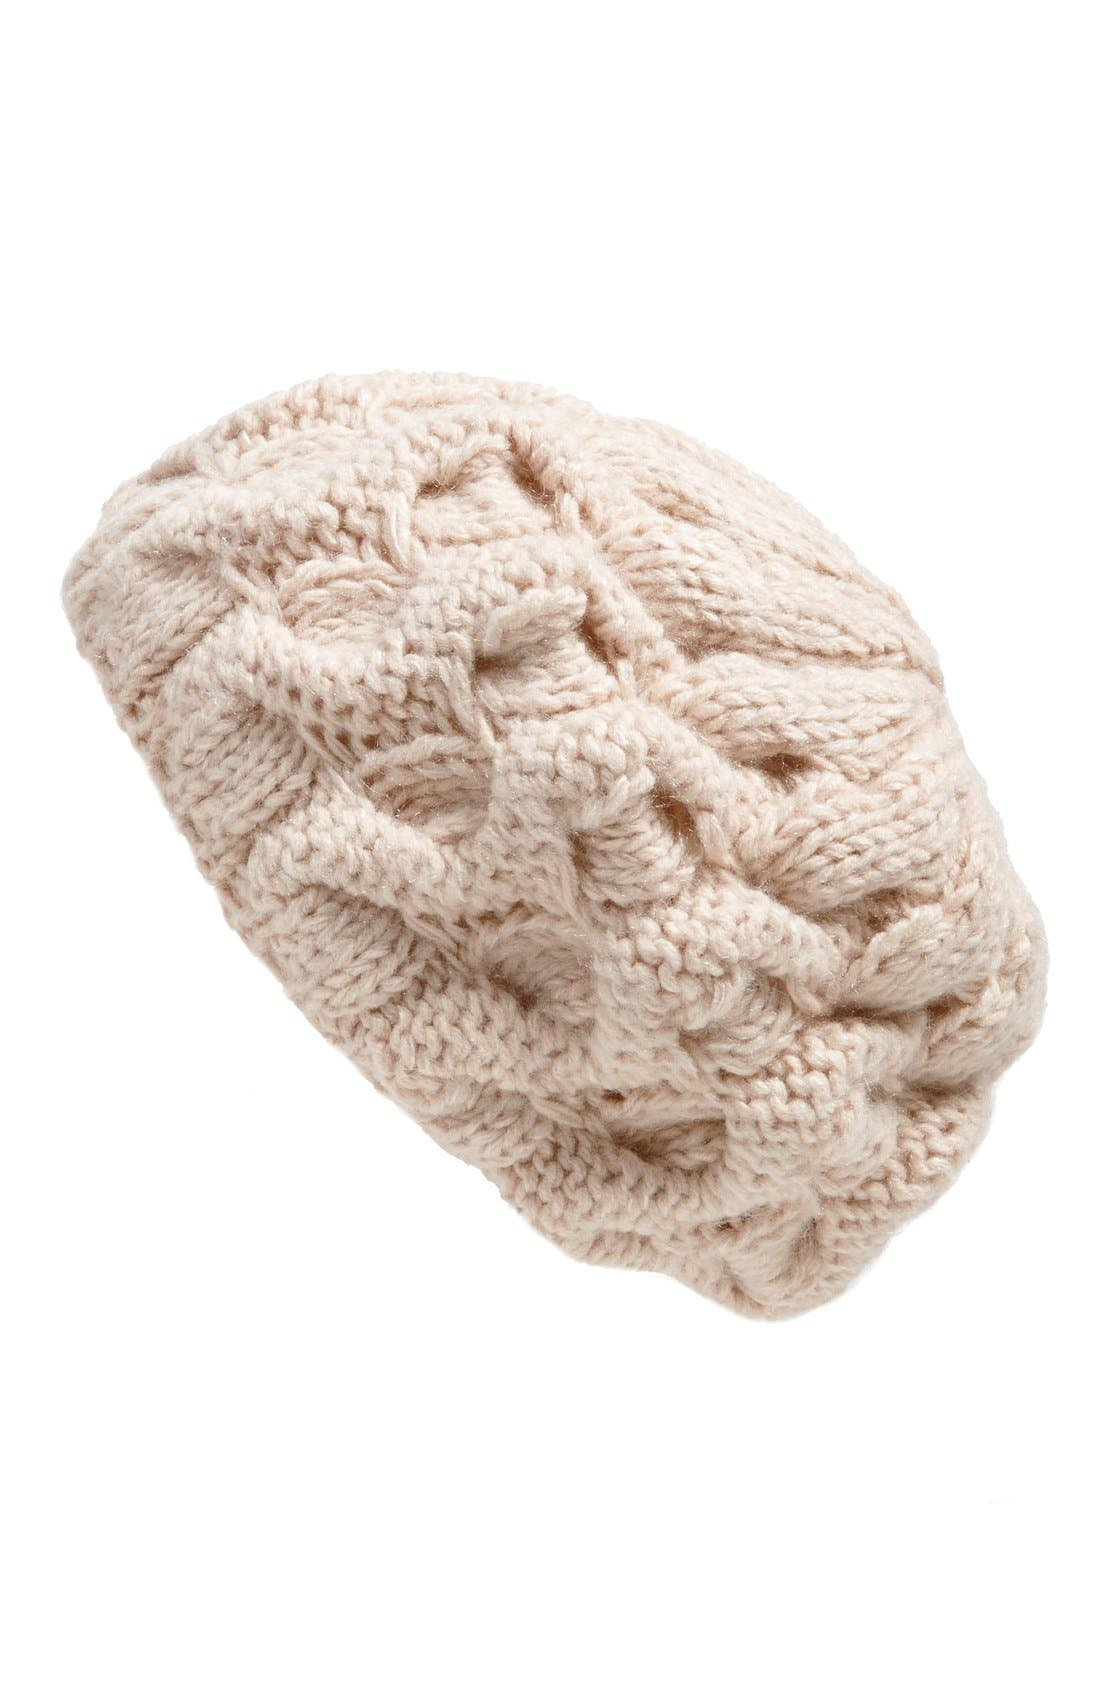 Main Image - Free People 'Snow Bird' Chunky Knit Beret